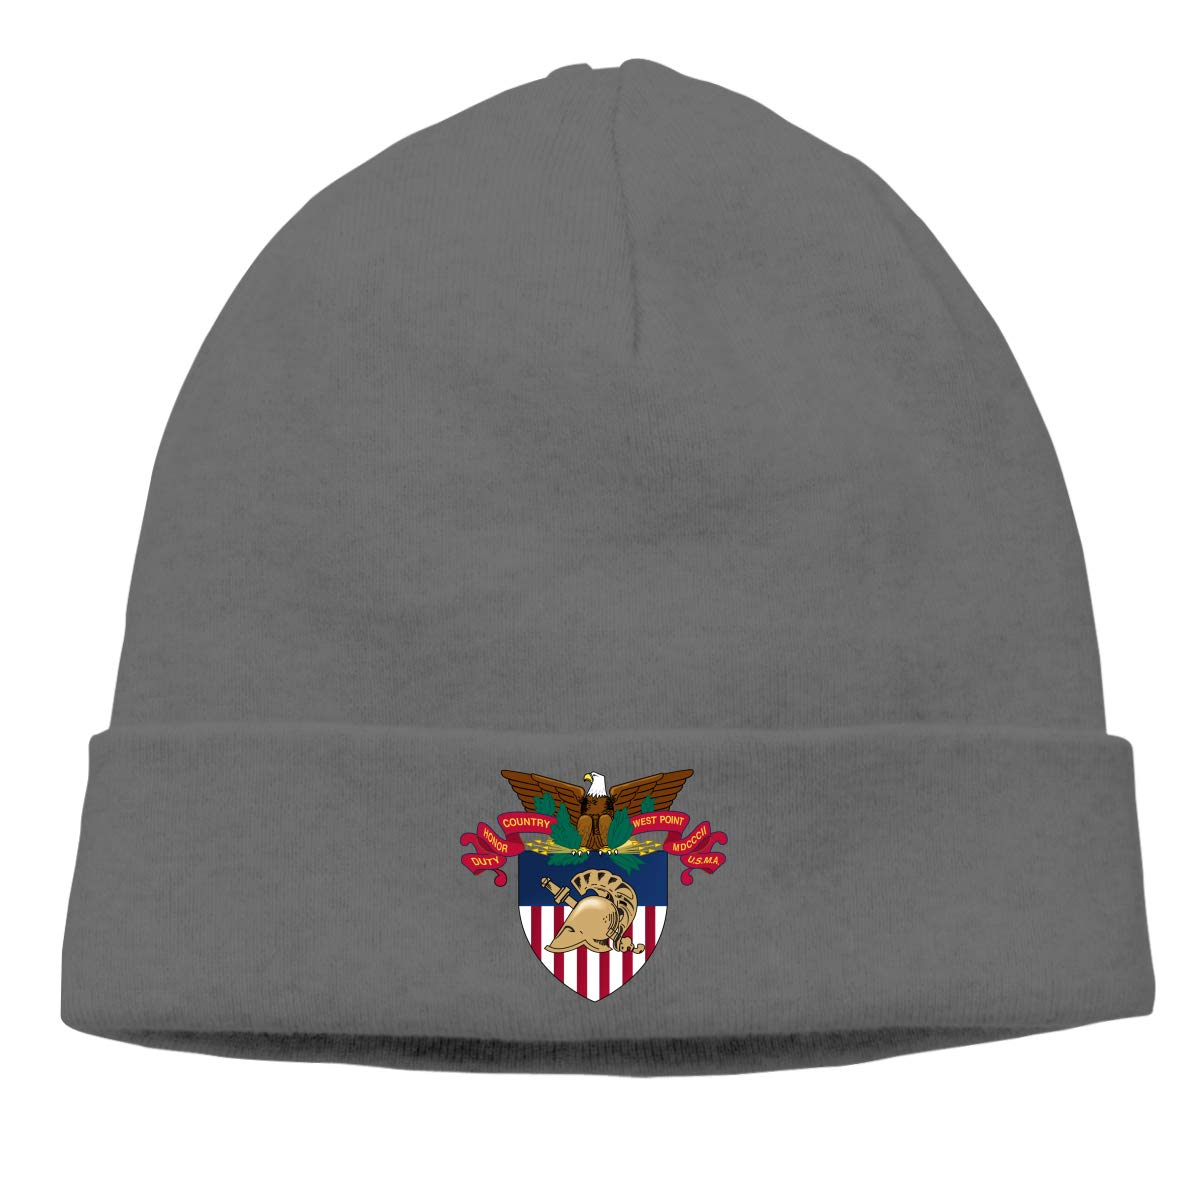 Simoner West Point Military Academy West Point Academy Logo Warm Stretchy Solid Daily Skull Cap,Knit Wool Beanie Hat Black